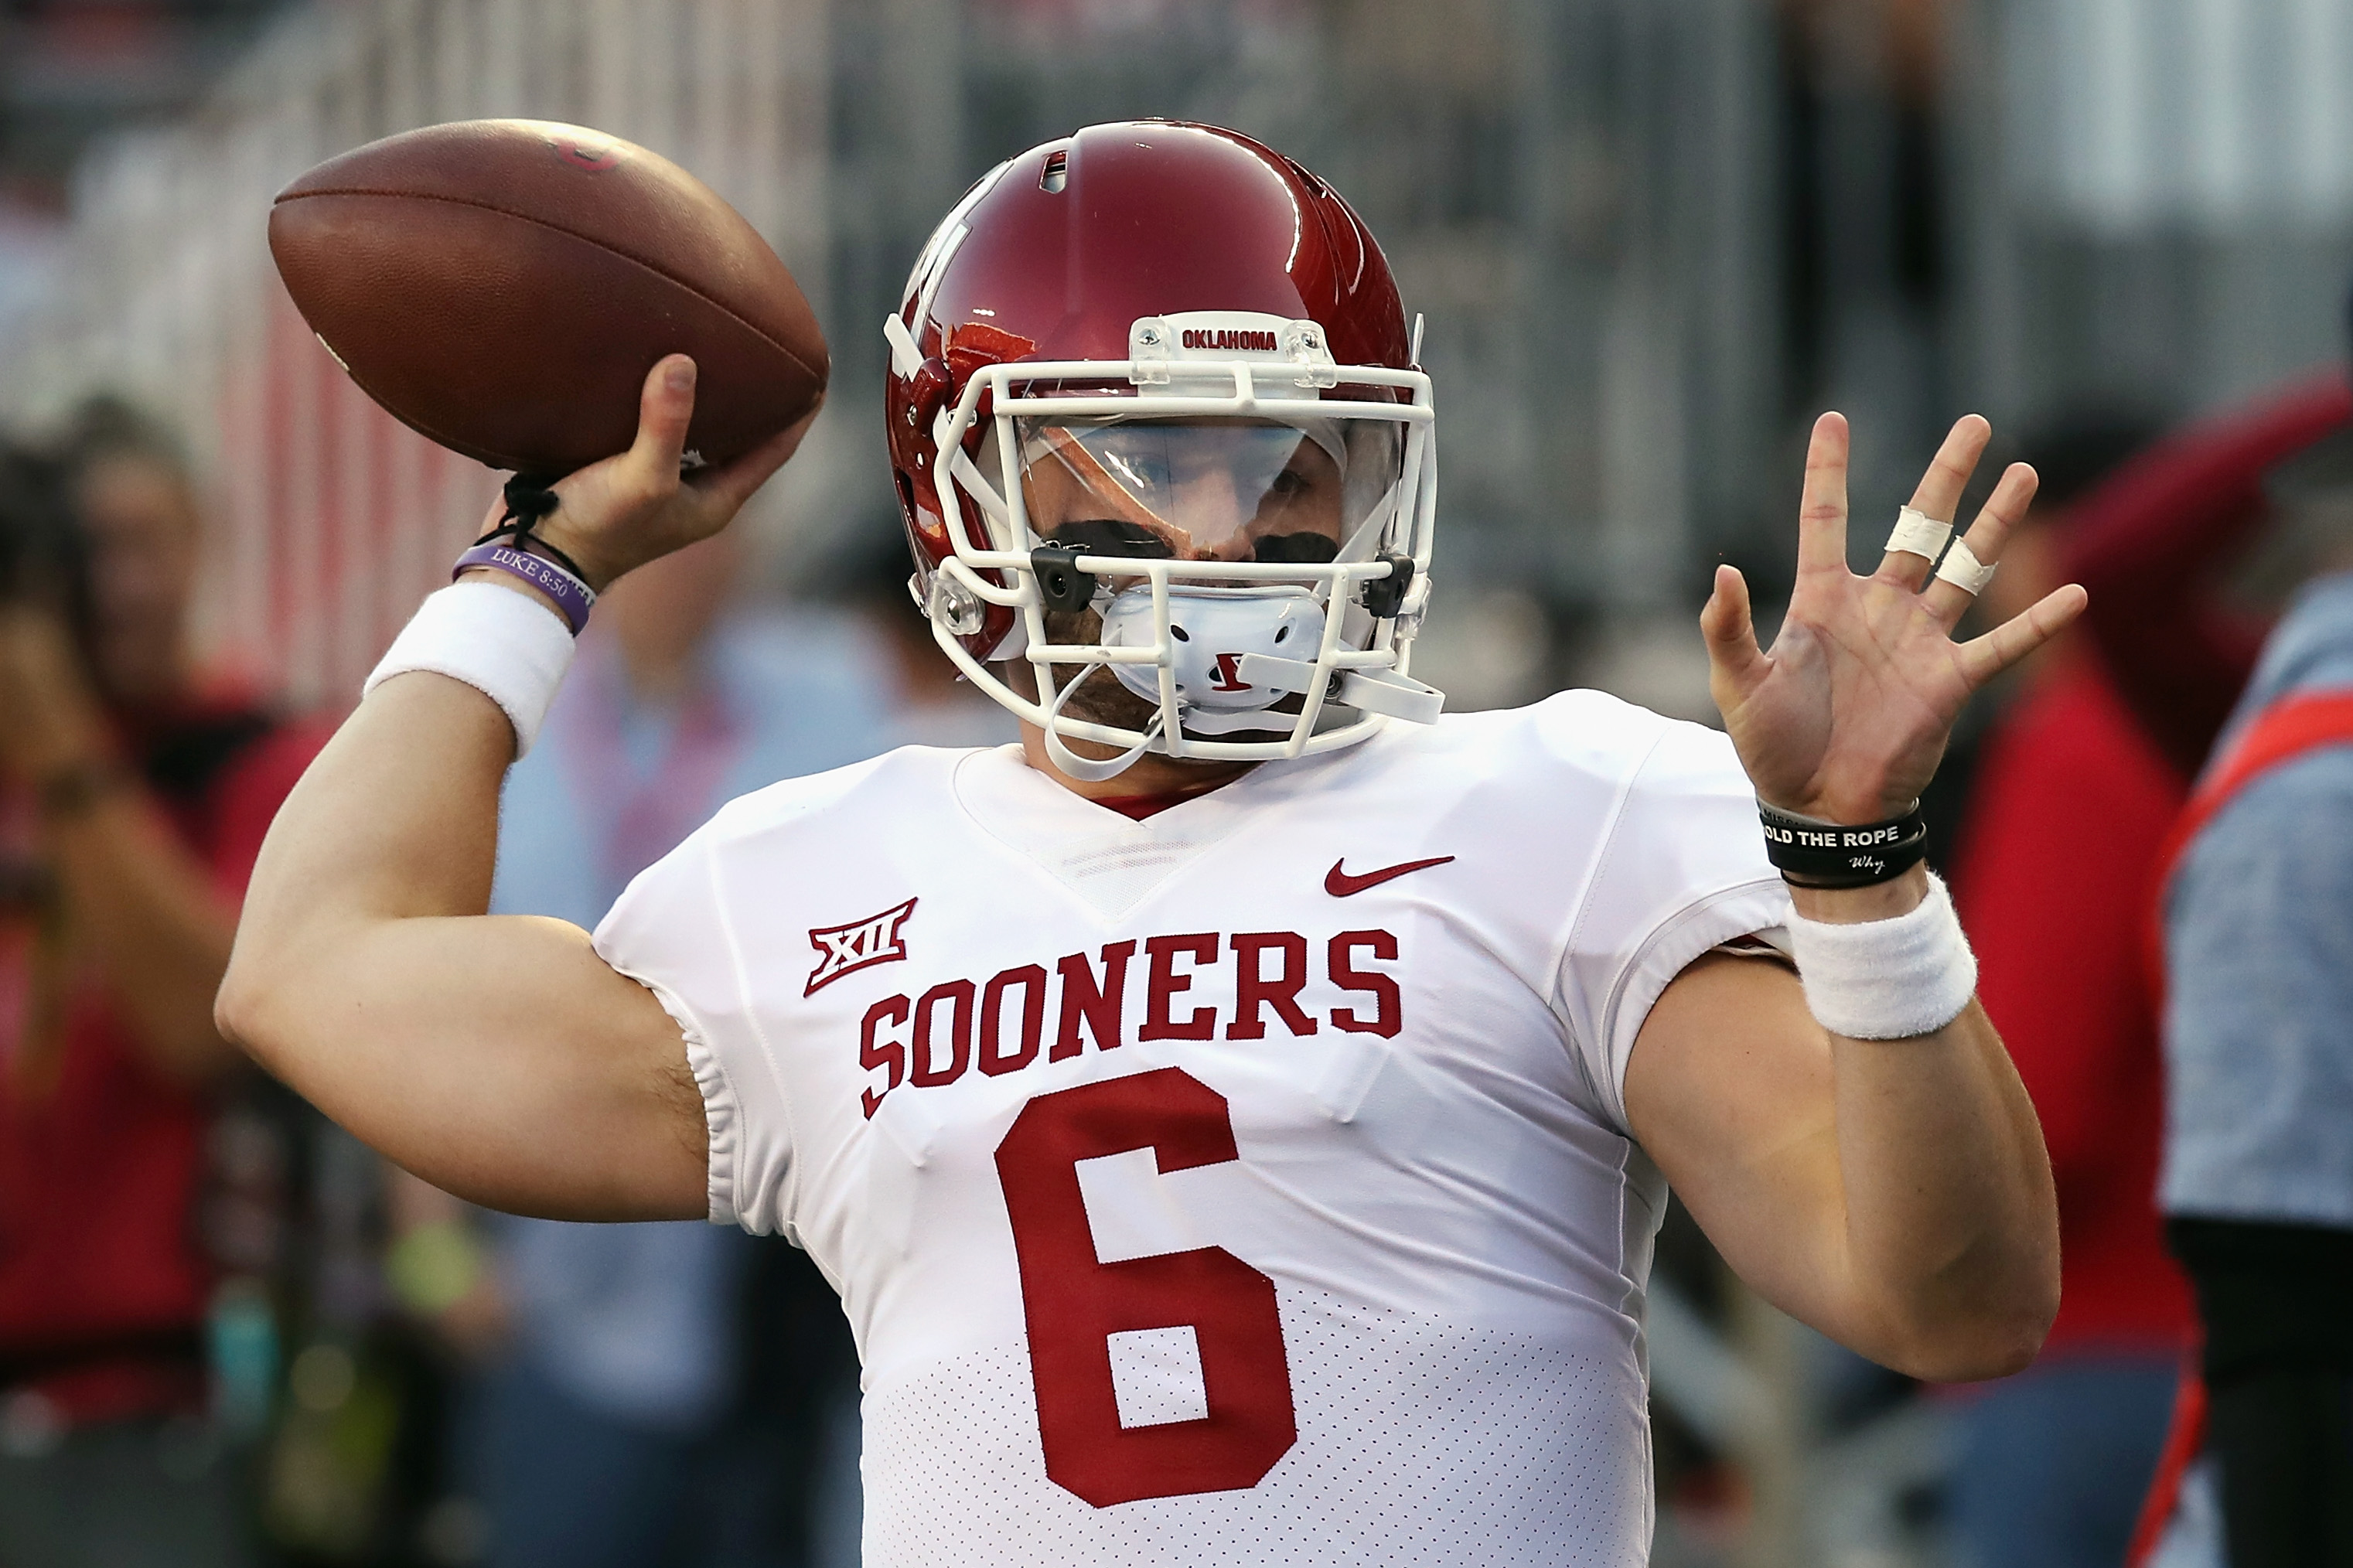 reputable site 4f916 4e72d Baker Mayfield: There's One Thing I Know How To Do, And ...